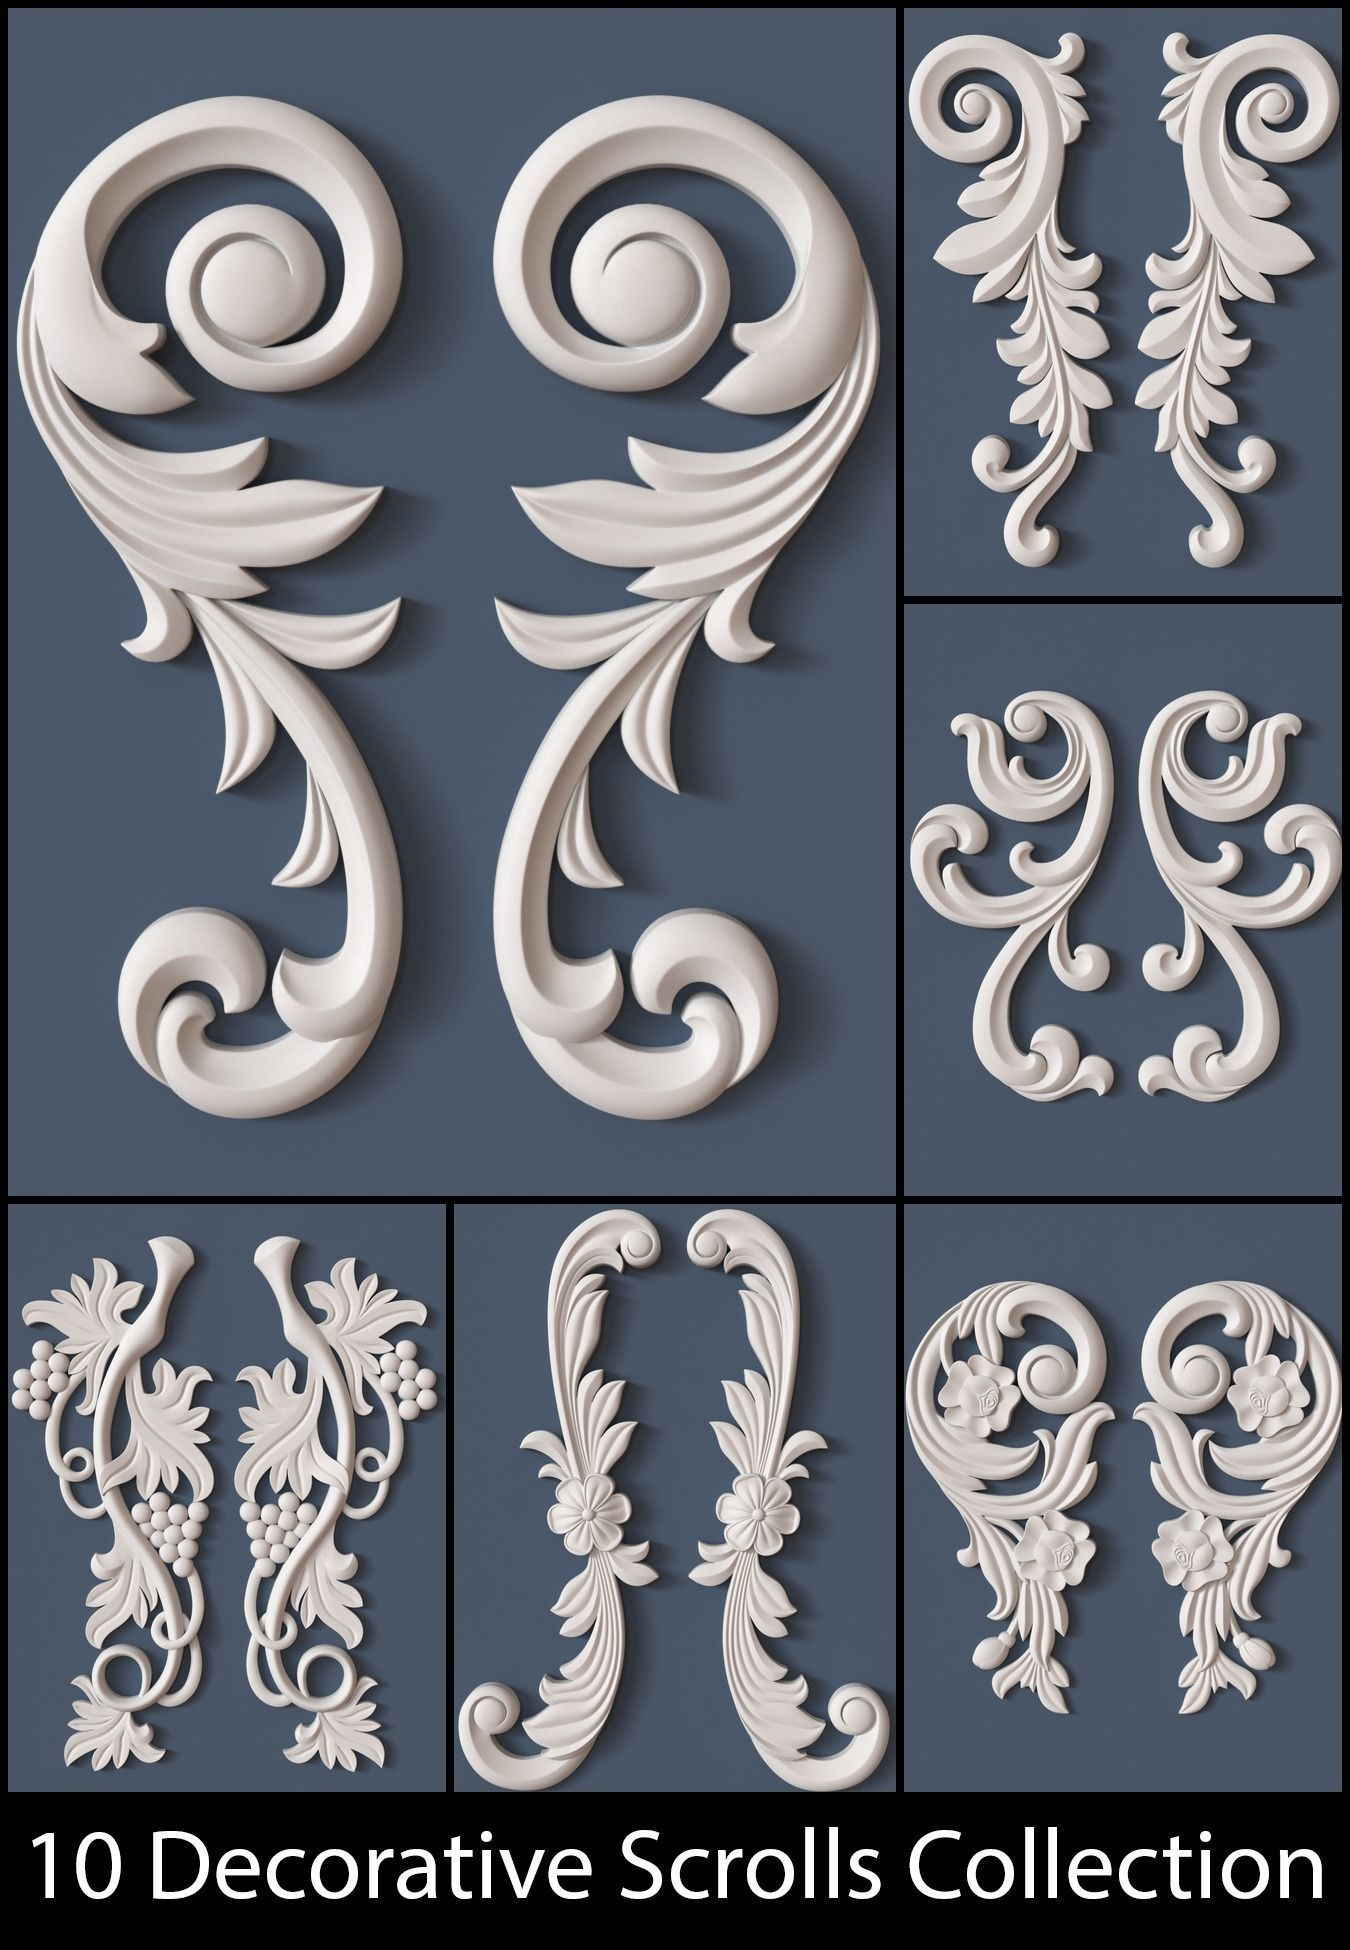 10 decorative scrolls collection 3d model max obj fbx ma